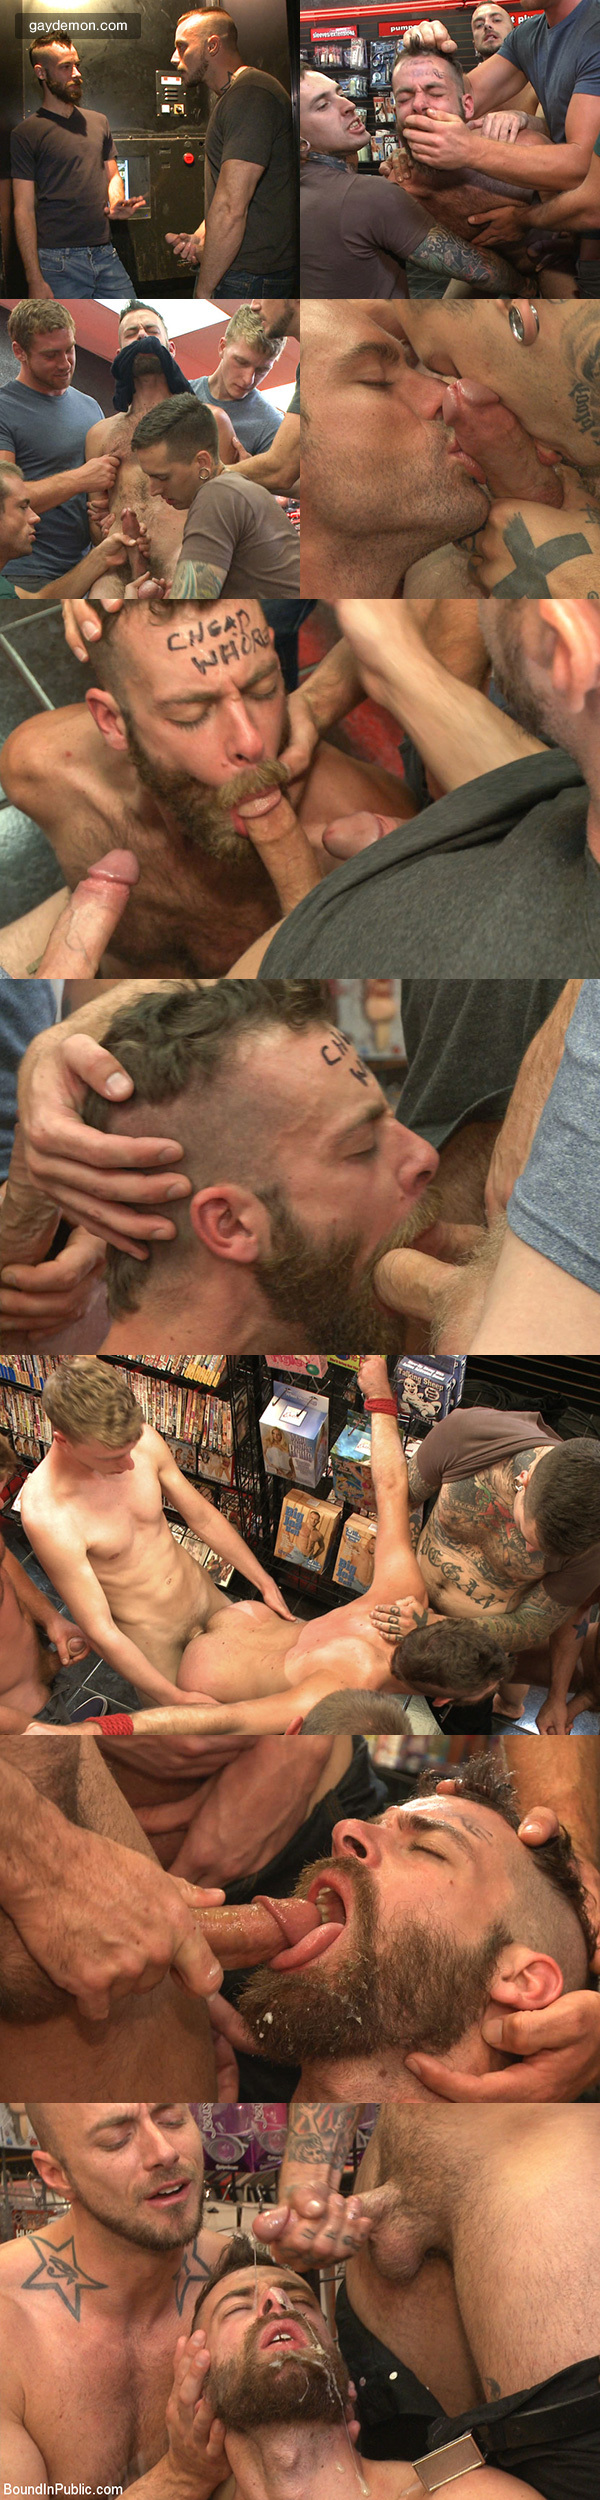 Bearded Hooker Pisses Off Horny Bookstore Cruisers